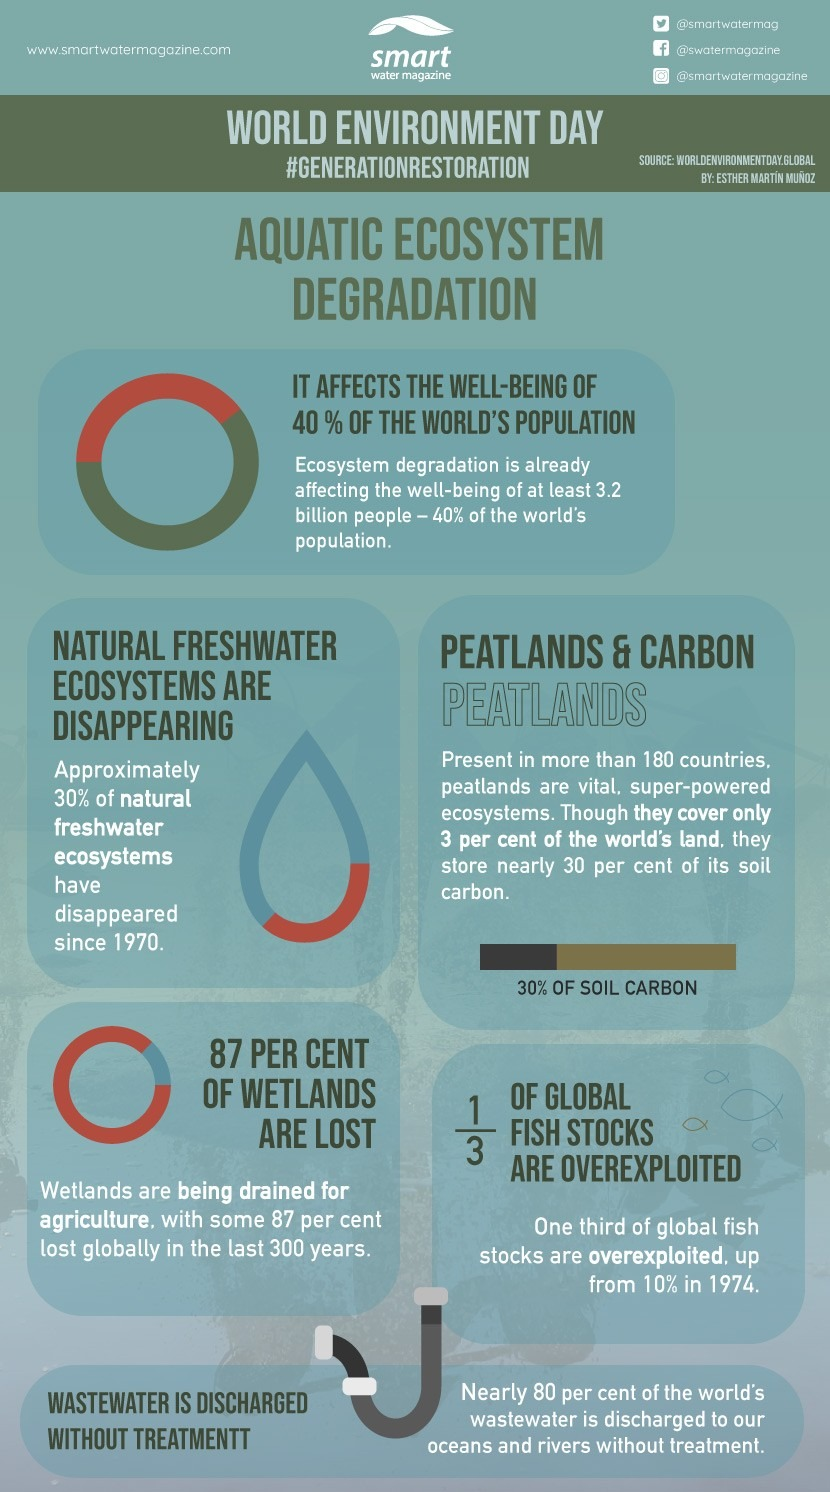 Degradation of aquatic ecosystems: Infographic for World Environment Day 2021